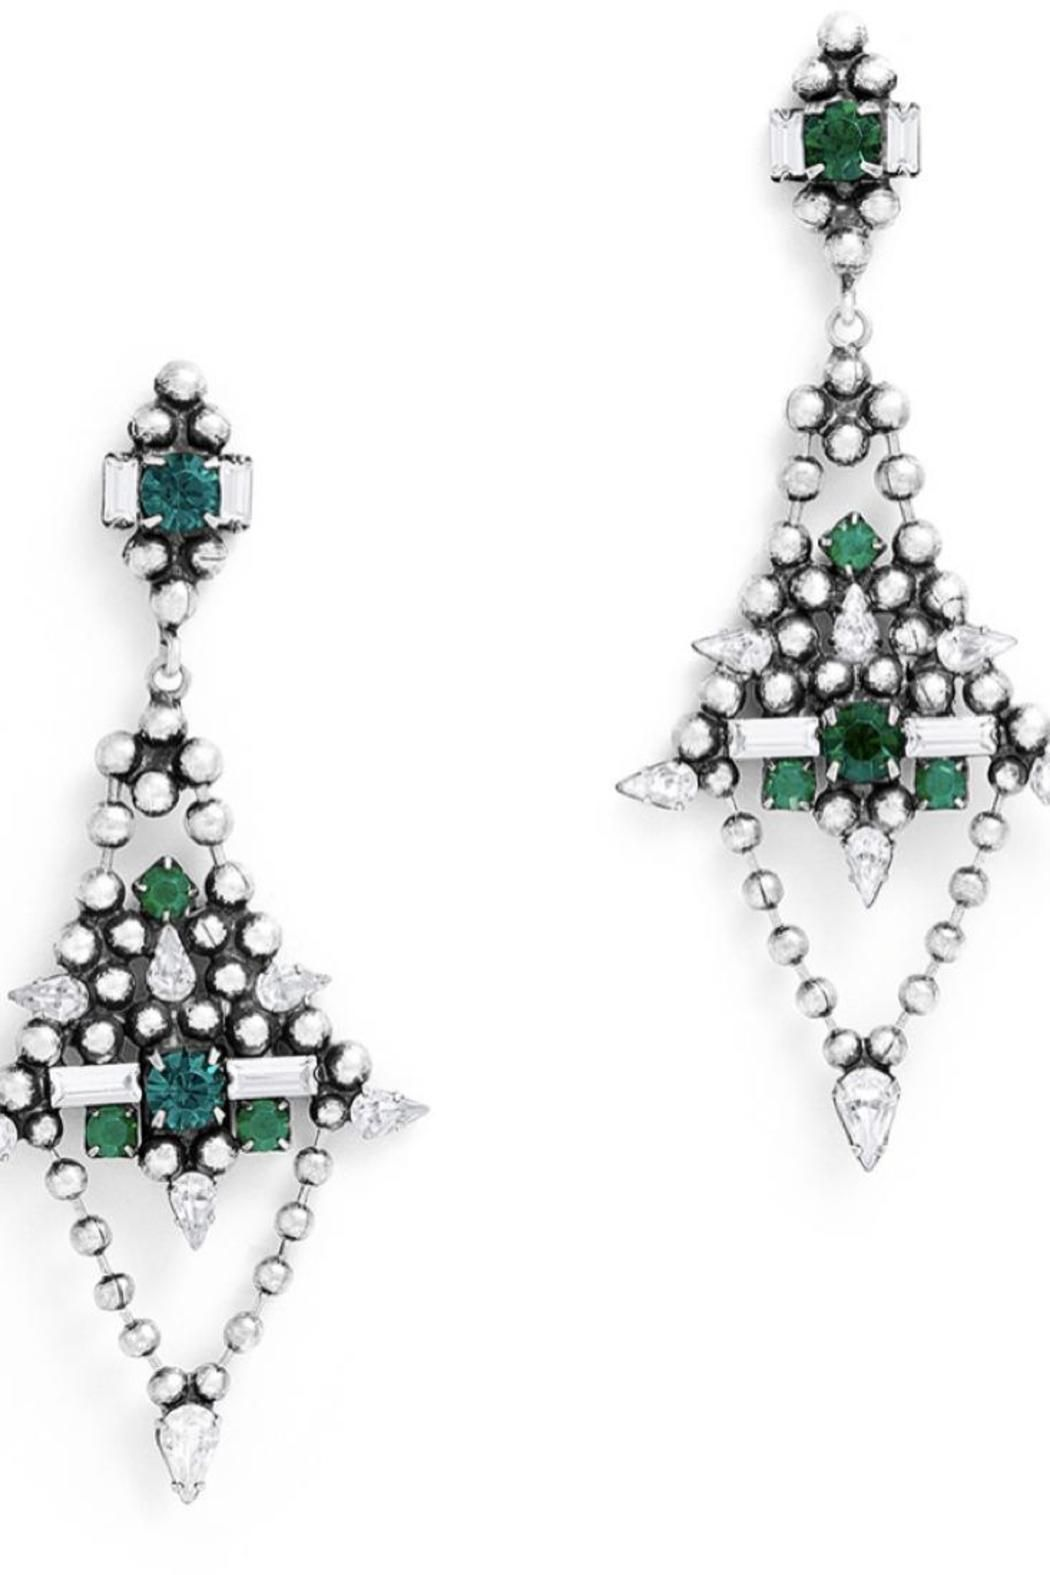 """Oxidized silver statement earrings with emerald and clear crystal Swarovski elements. Post backs for pierced ears.    Measures: 3"""" L   Lazarus Earring by DanniJo. Accessories - Jewelry - Earrings - Statement Toronto, Canada"""